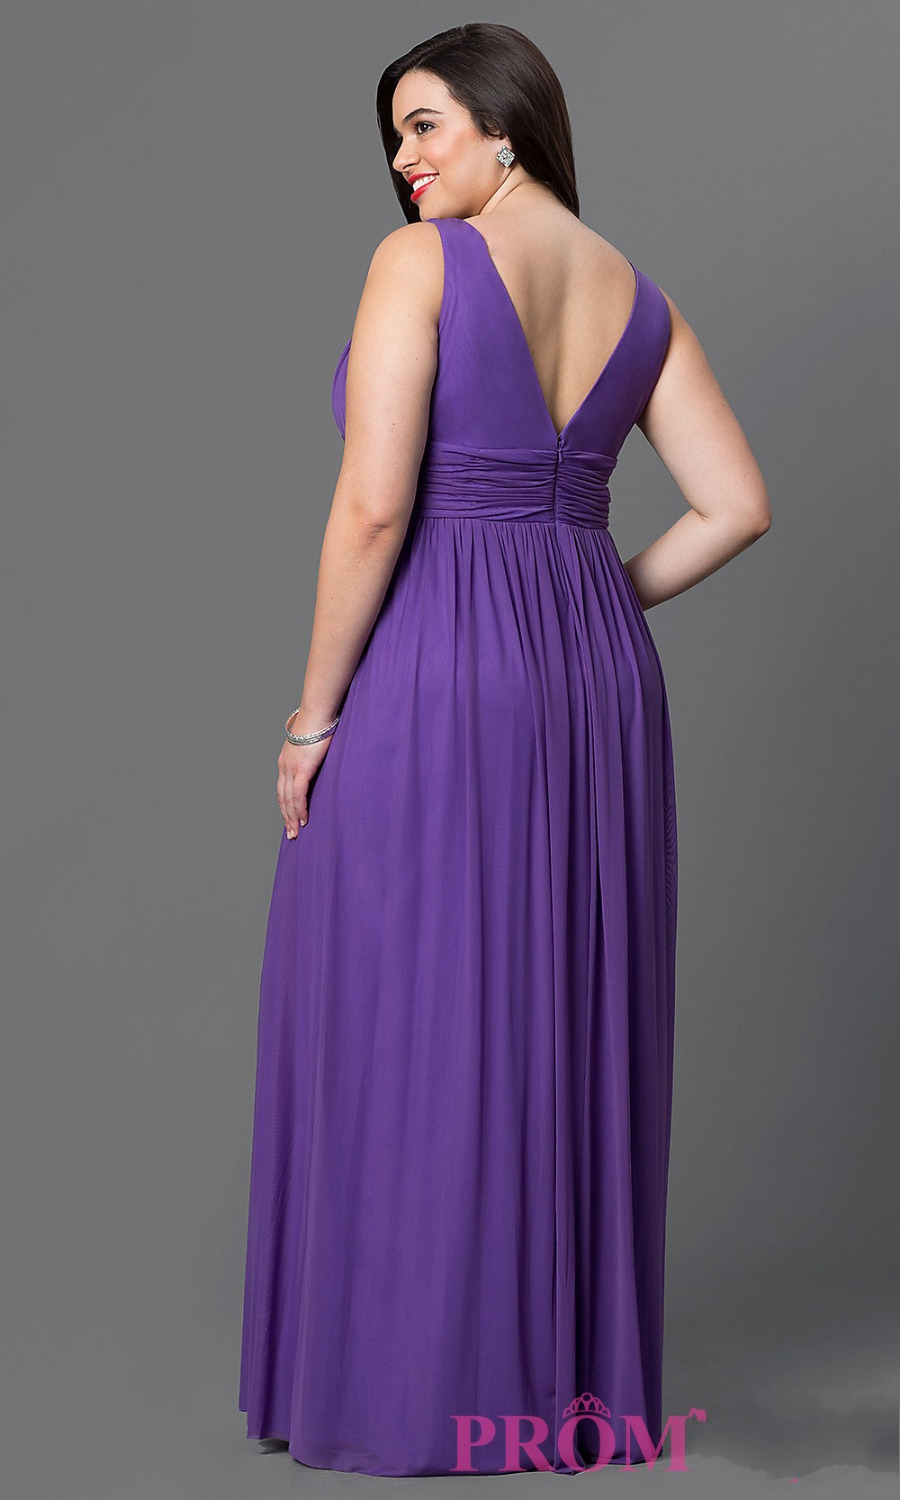 Robe De Soiree Longue Plus Size Evening Dresses 2016 Long Formal Dress  Beaded Purple Chiffon Party Speicial Occasion Dress-in Evening Dresses from  Weddings ... 023c9913e199